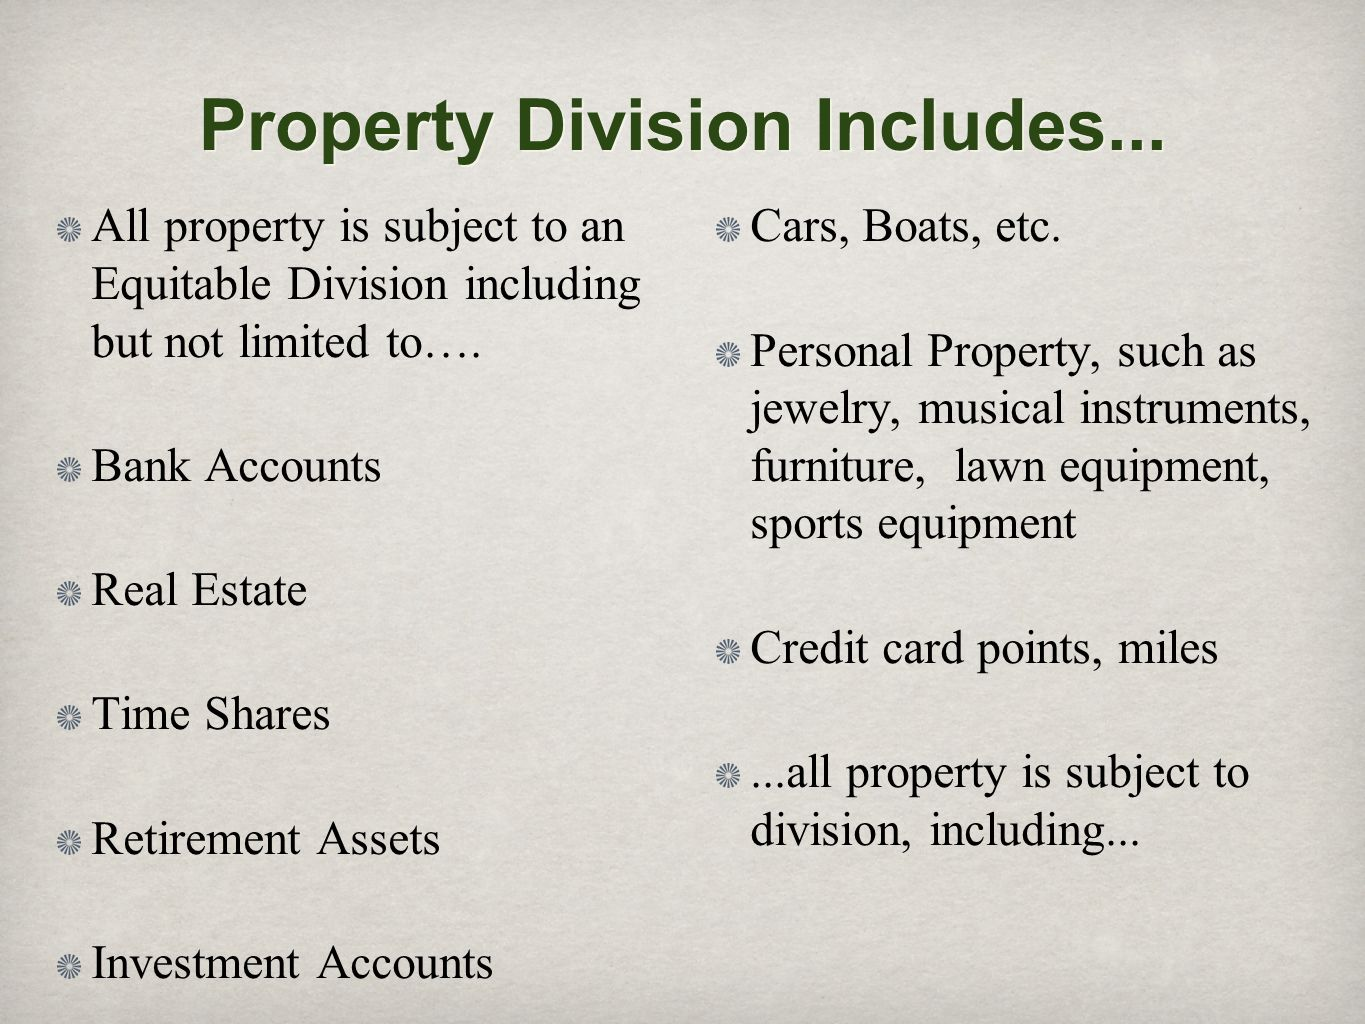 Property Division Includes...